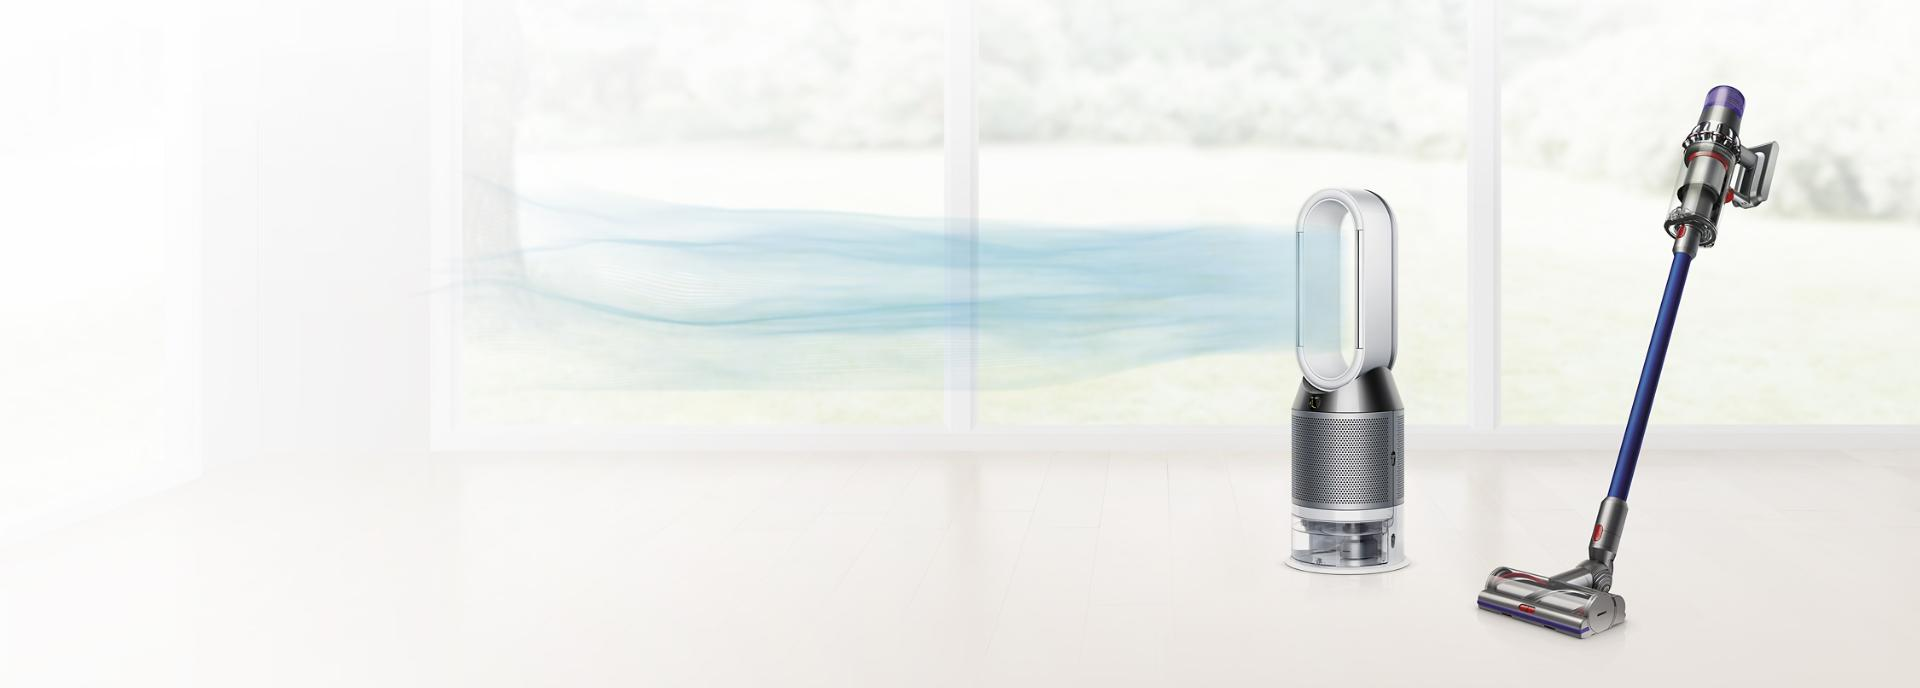 Dyson V11™ vacuum and Dyson Pure Cool™ air purifier